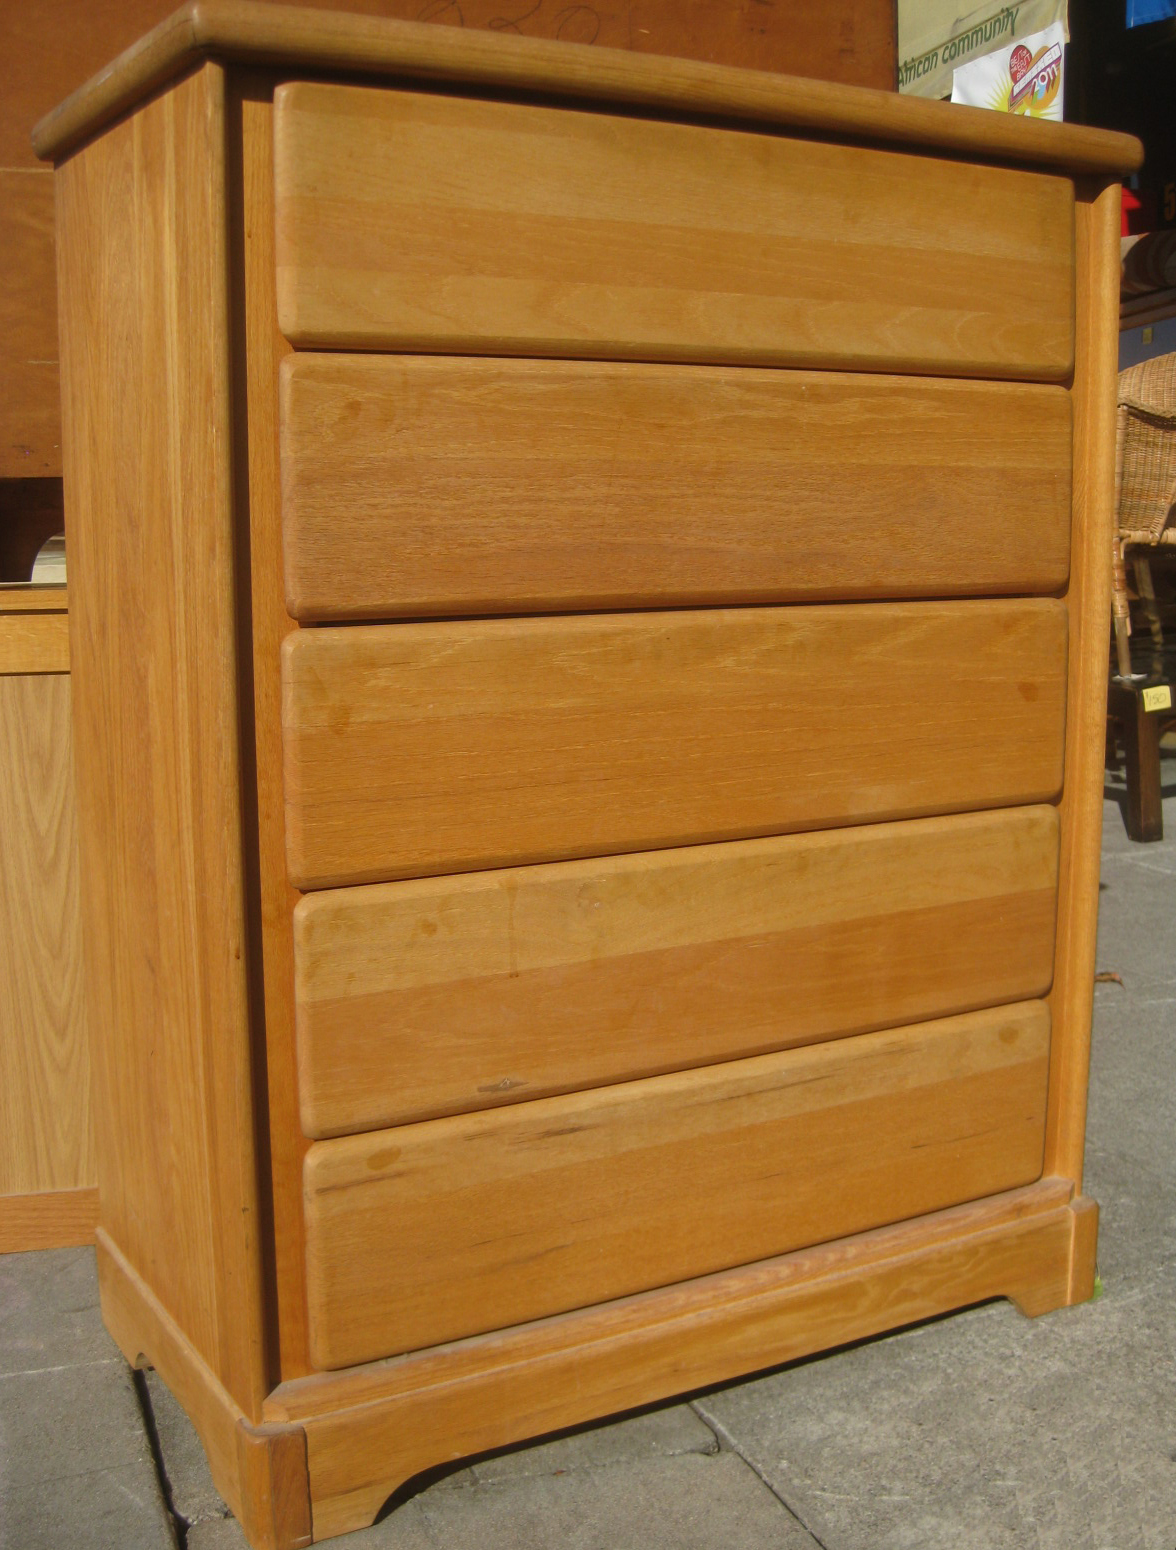 Uhuru furniture collectibles solid wooden chest of drawers